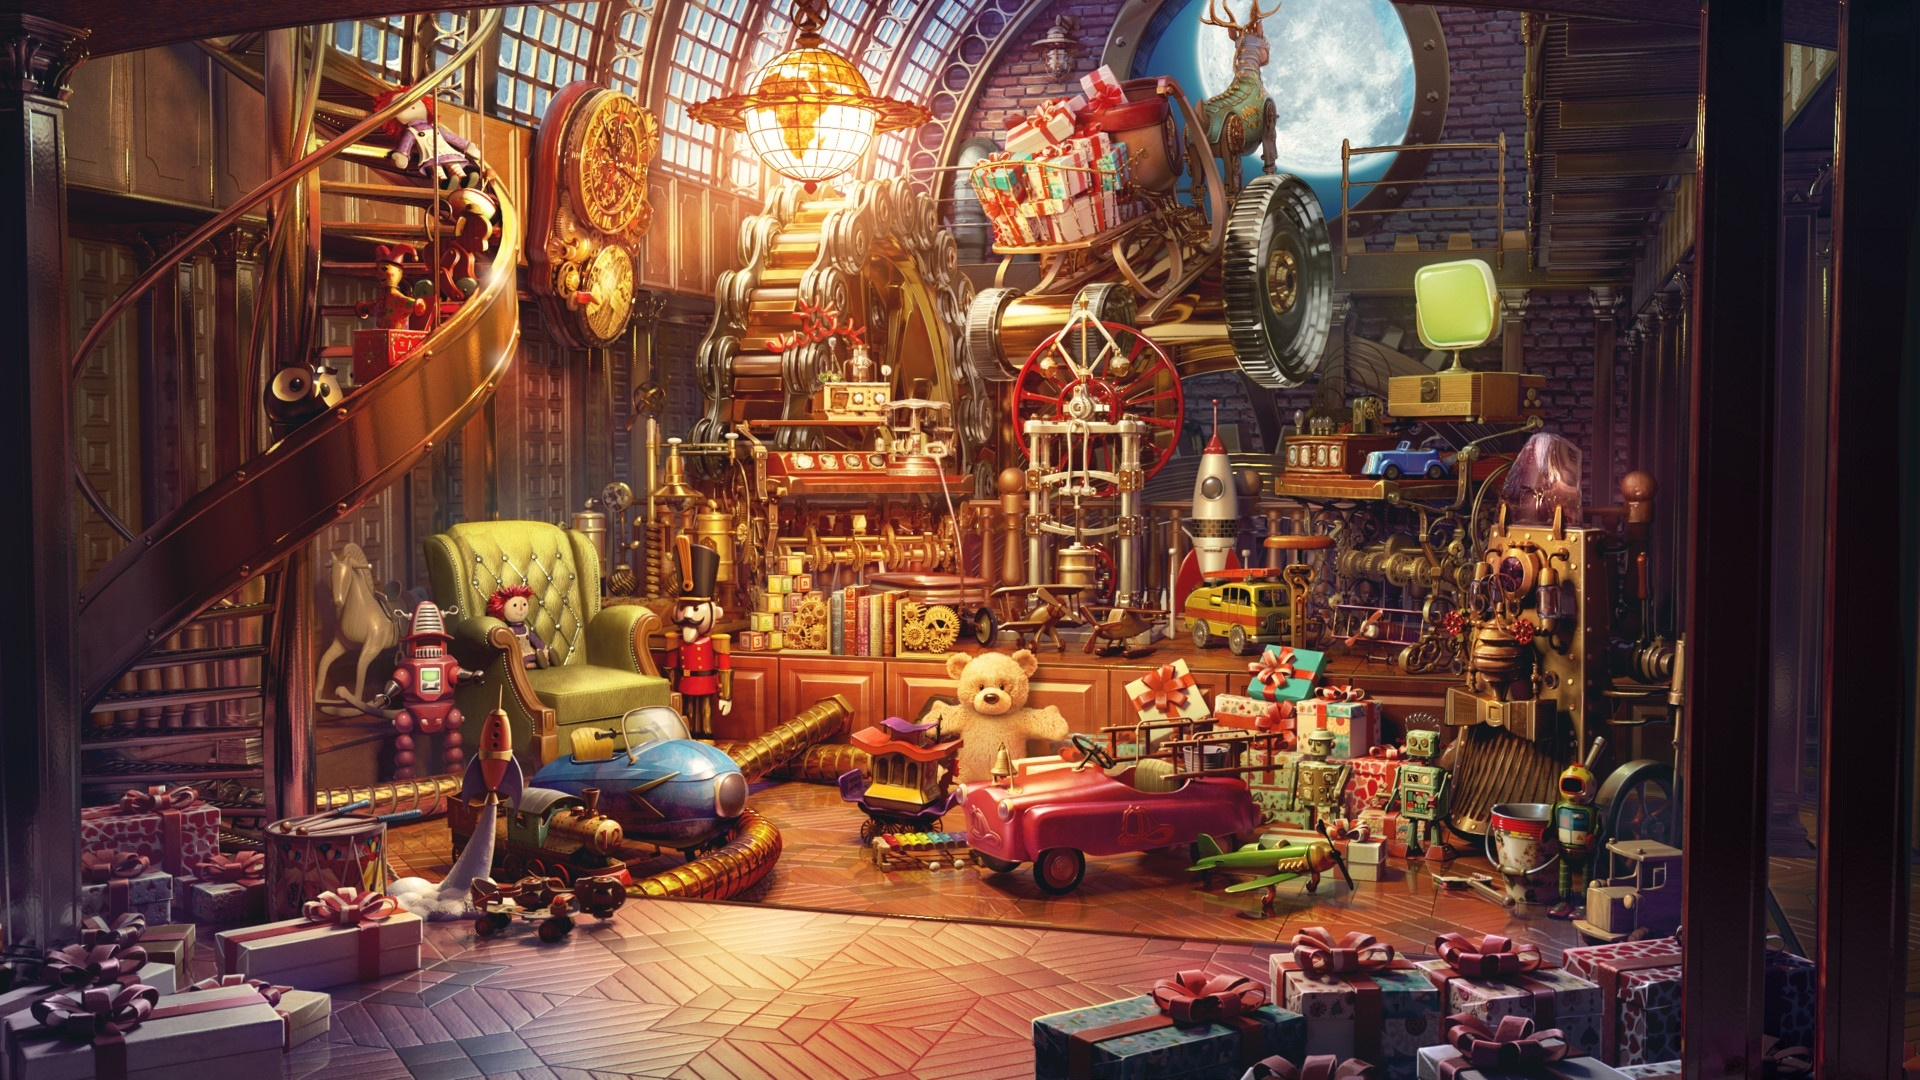 Santa's house with lot of toys wallpaper